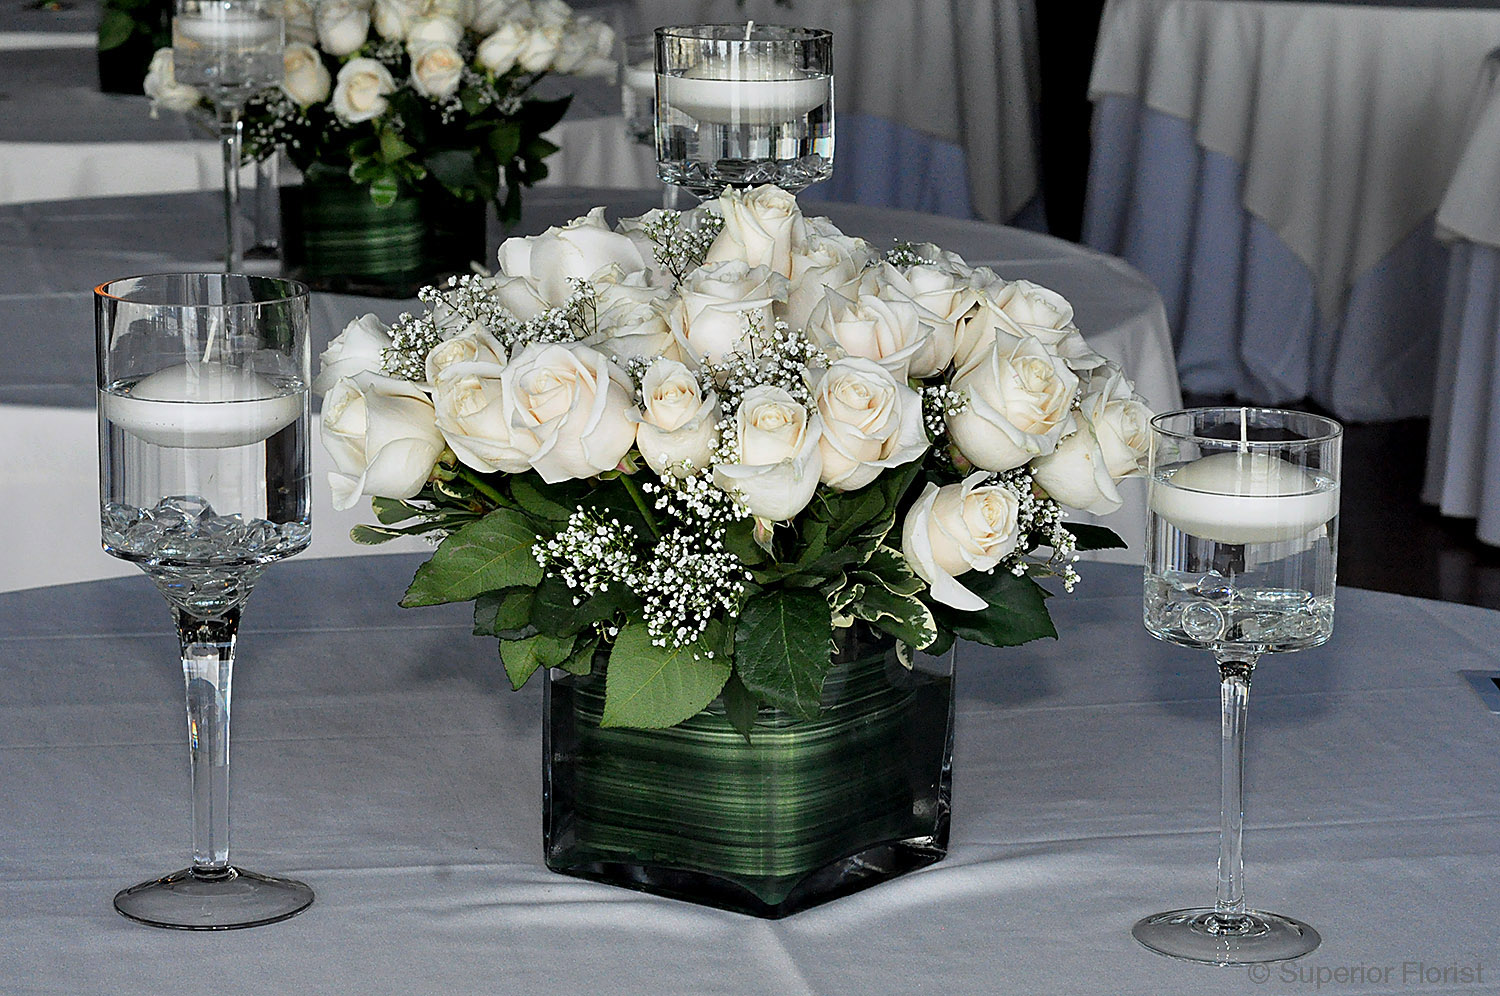 Superior Florist – Centerpieces:  All white roses, Baby's Breath and greens in a glass cube vase lined with leaf wrap. Arrangement complemented by three candleholders each with floating candles.